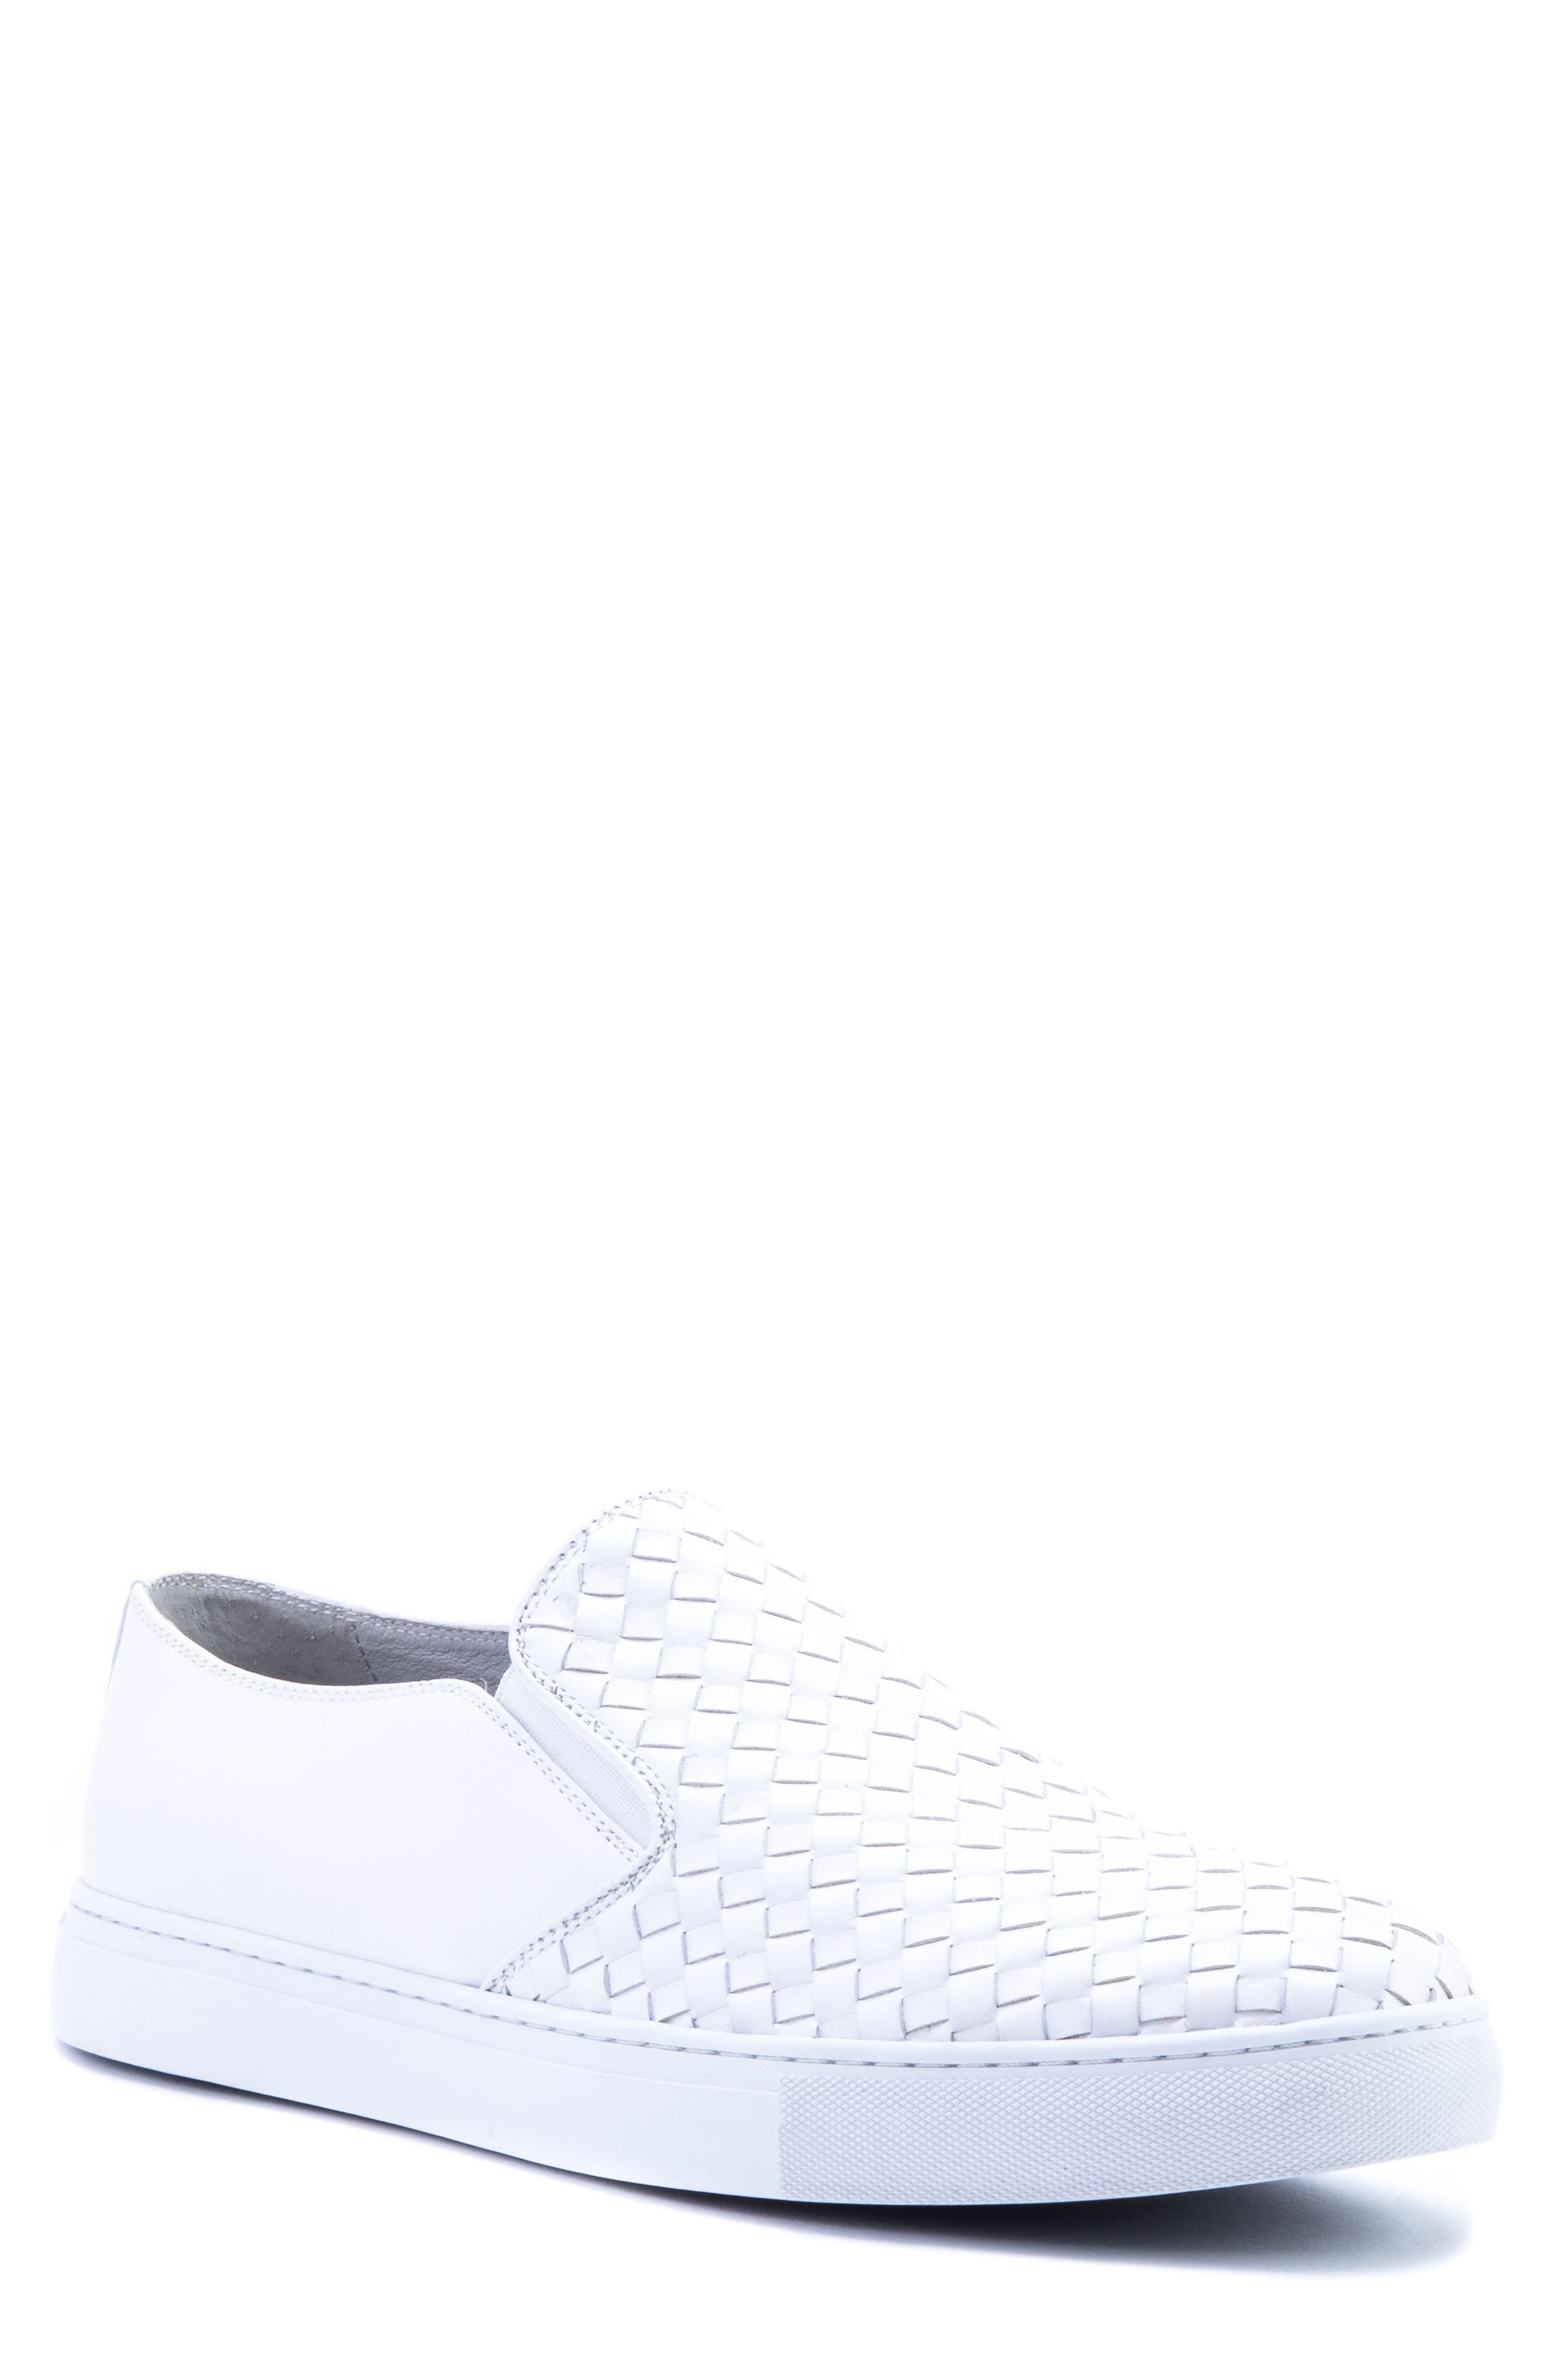 Echo II Woven Slip-On Sneaker,                             Main thumbnail 1, color,                             White Leather